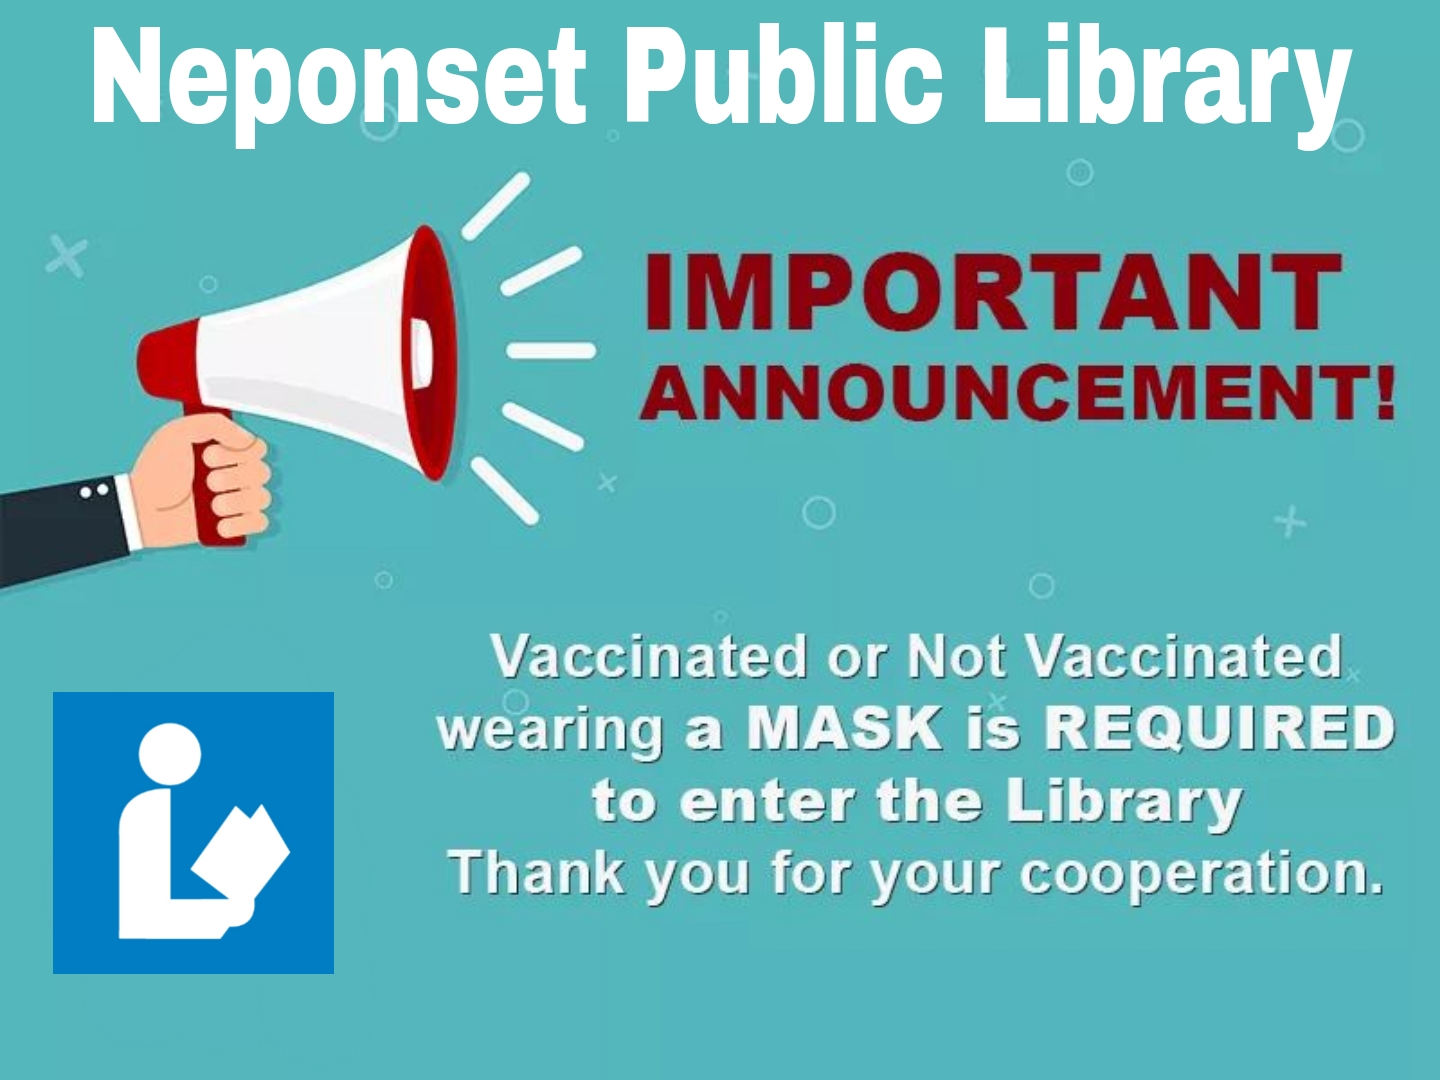 Vaccinated or not wear a mask with lib